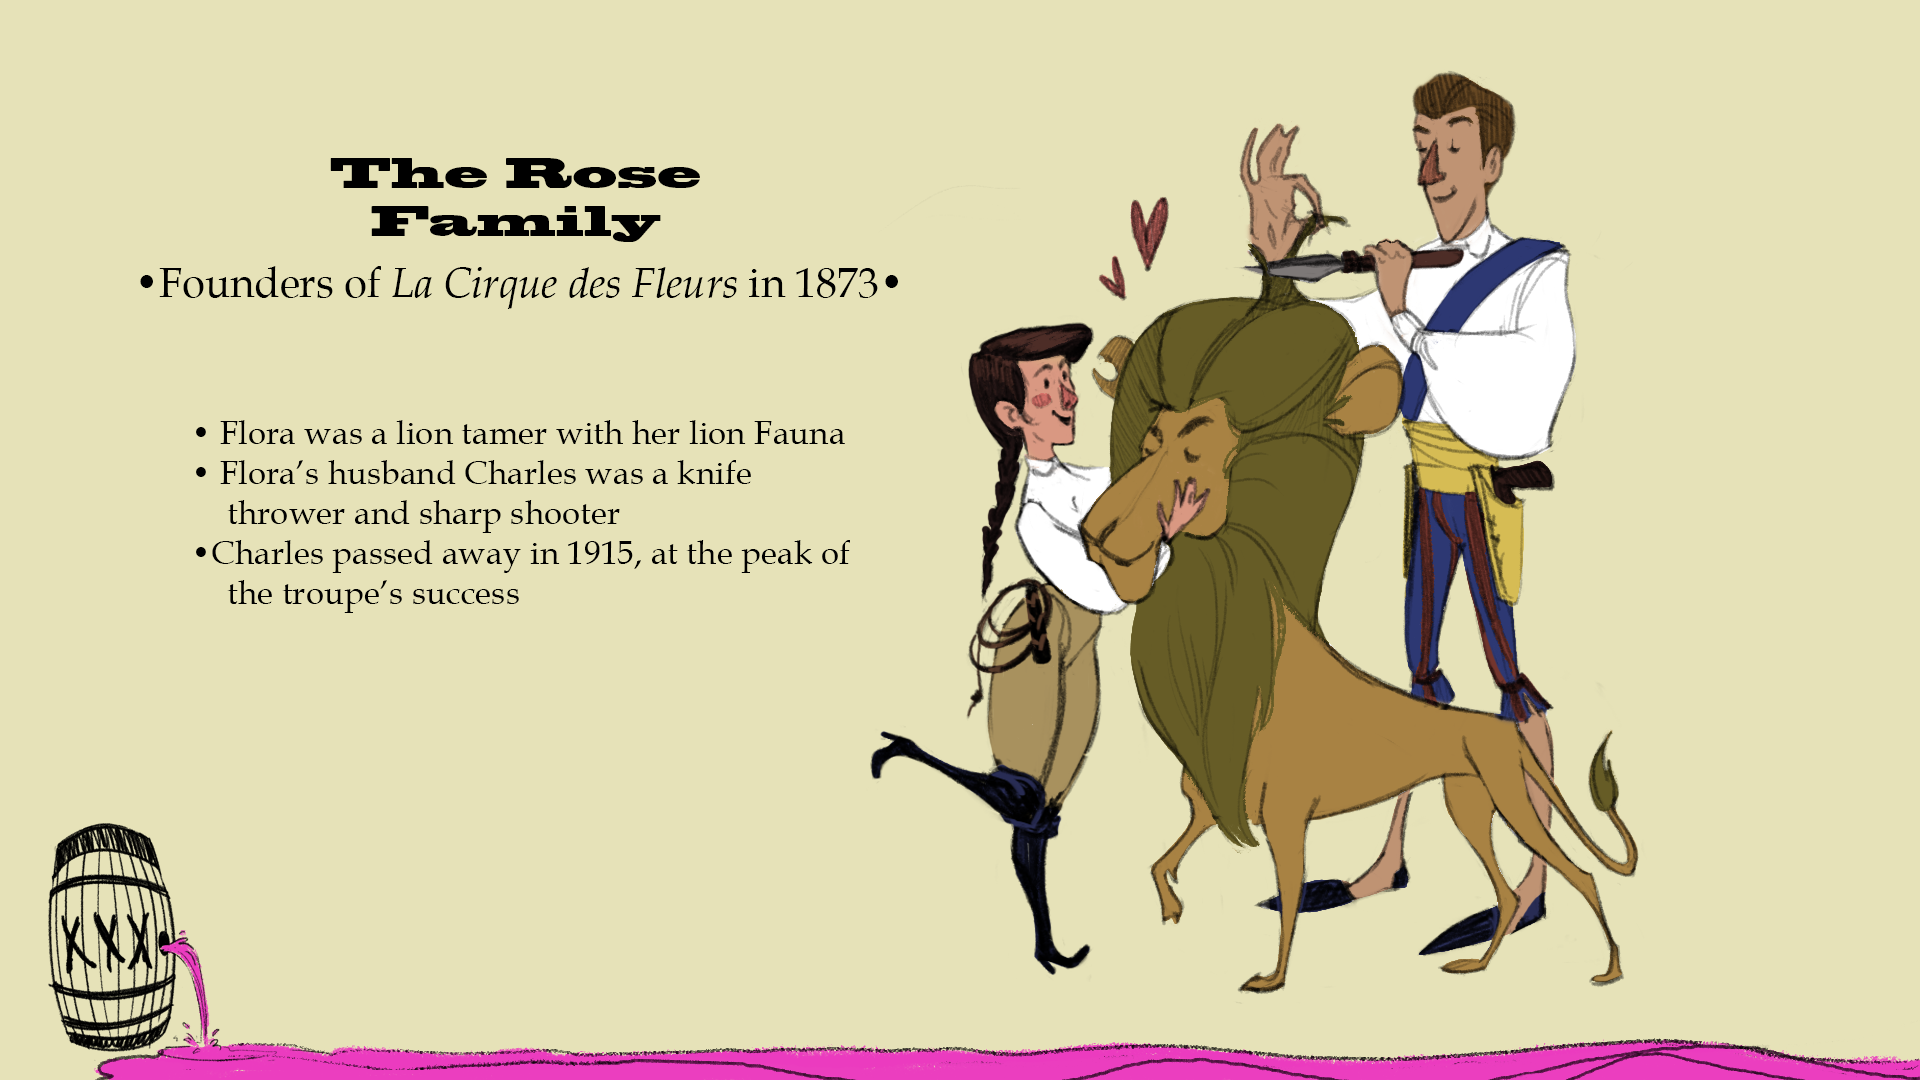 The Rose Family in 1873